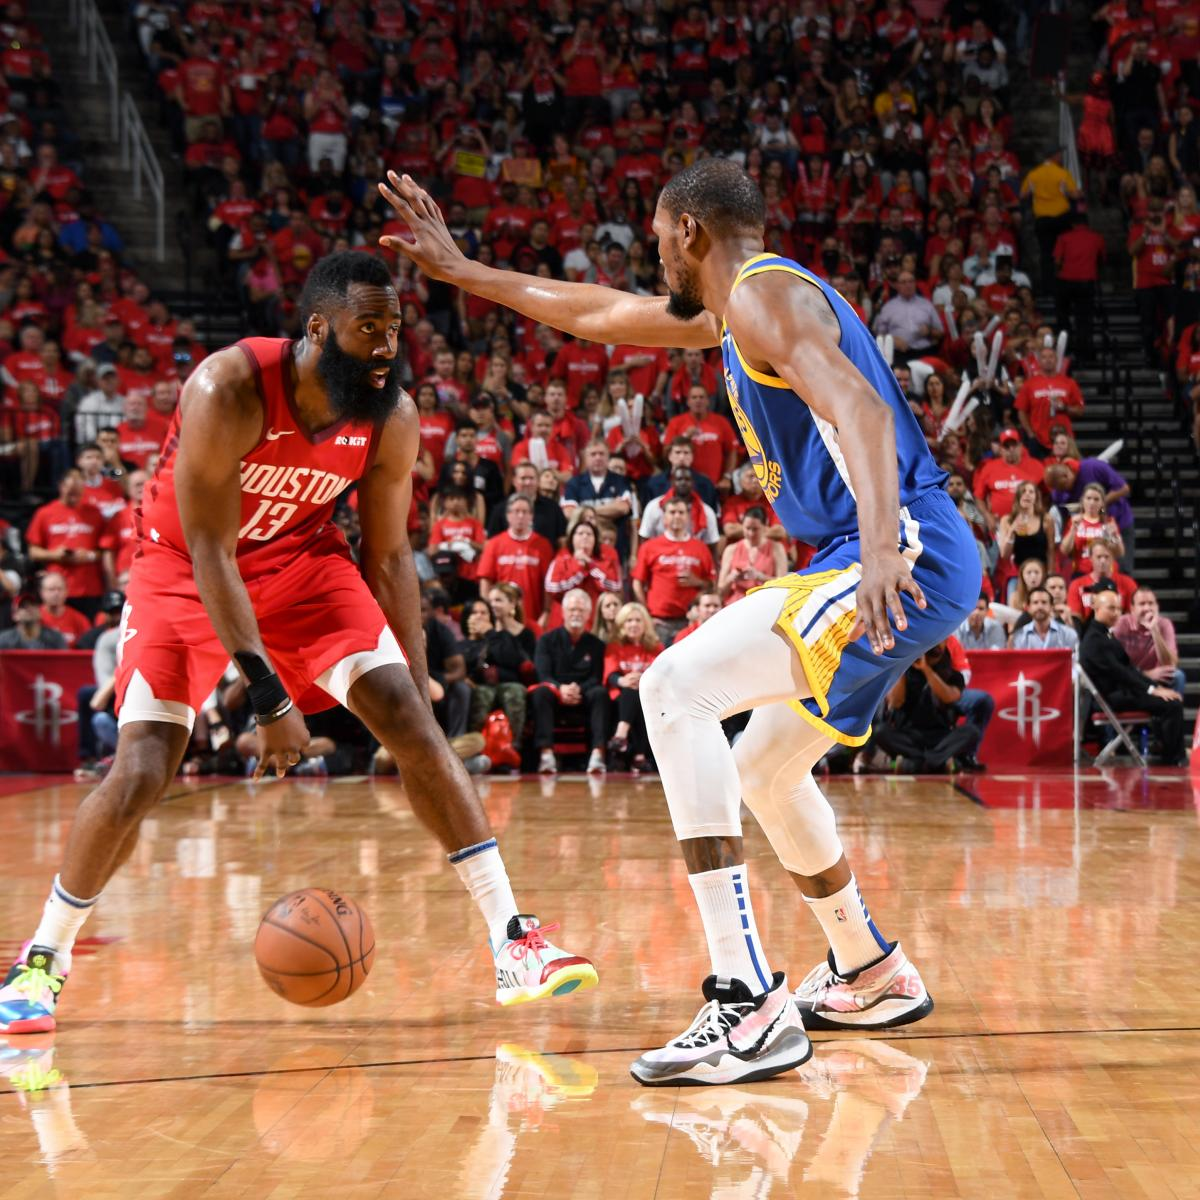 James Harden posted 41 points, nine rebounds and six assists as the Houston Rockets earned a 126-121 overtime win versus the visiting Golden State Warriors in Game 3 of their NBA Western Conference second-round playoff series...